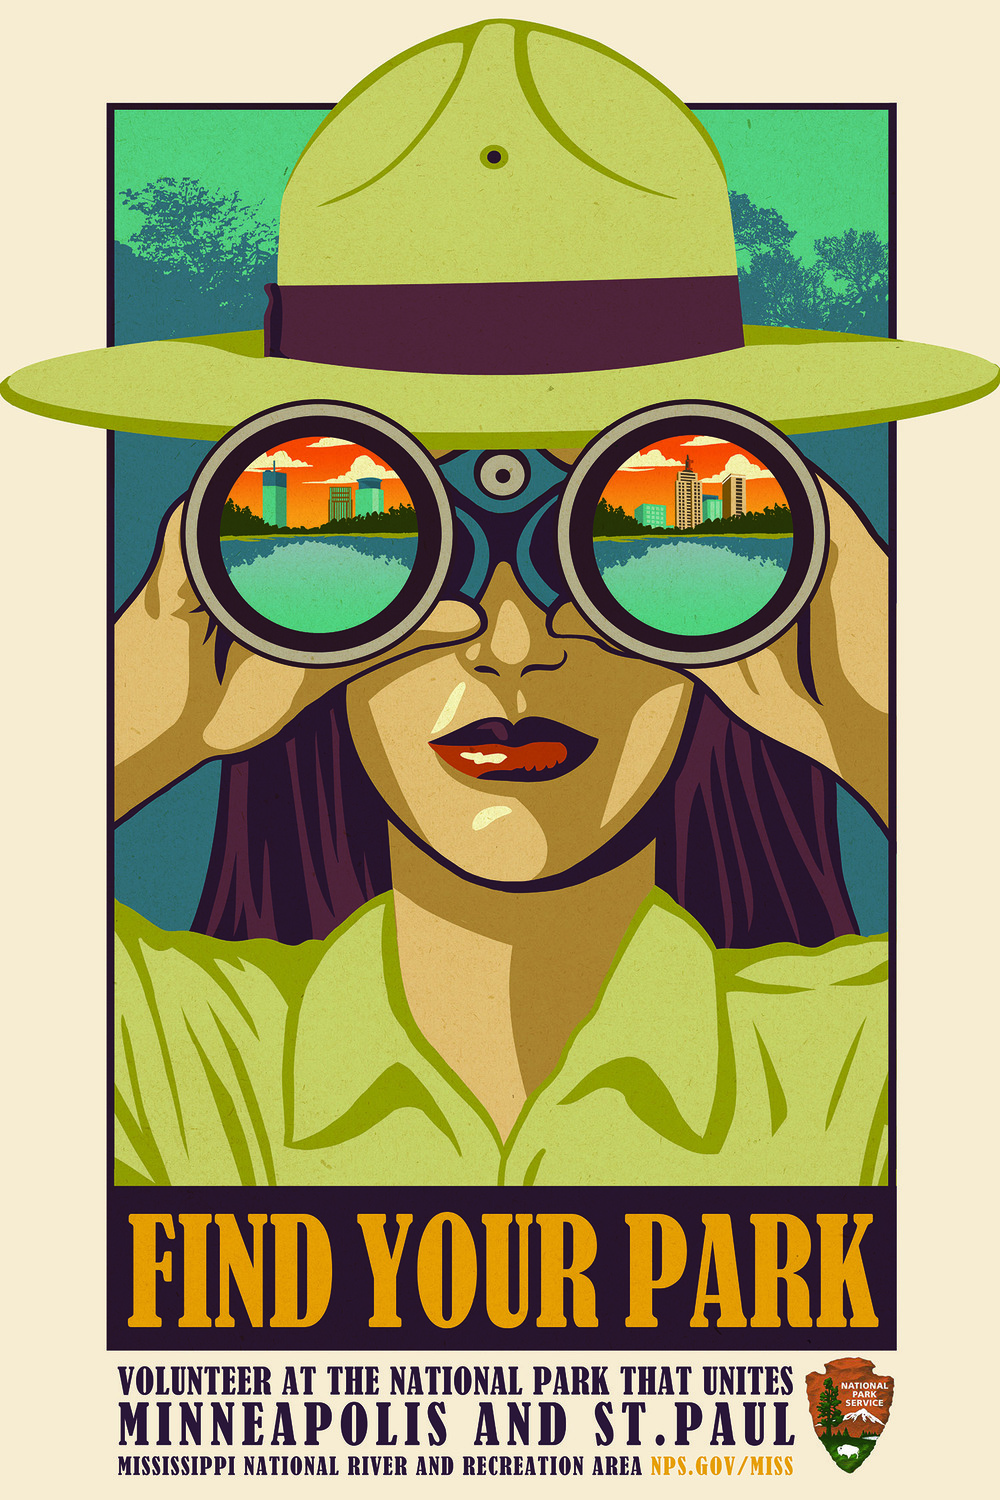 NPS_Poster_FIND YOUR PARK_MISS.jpg